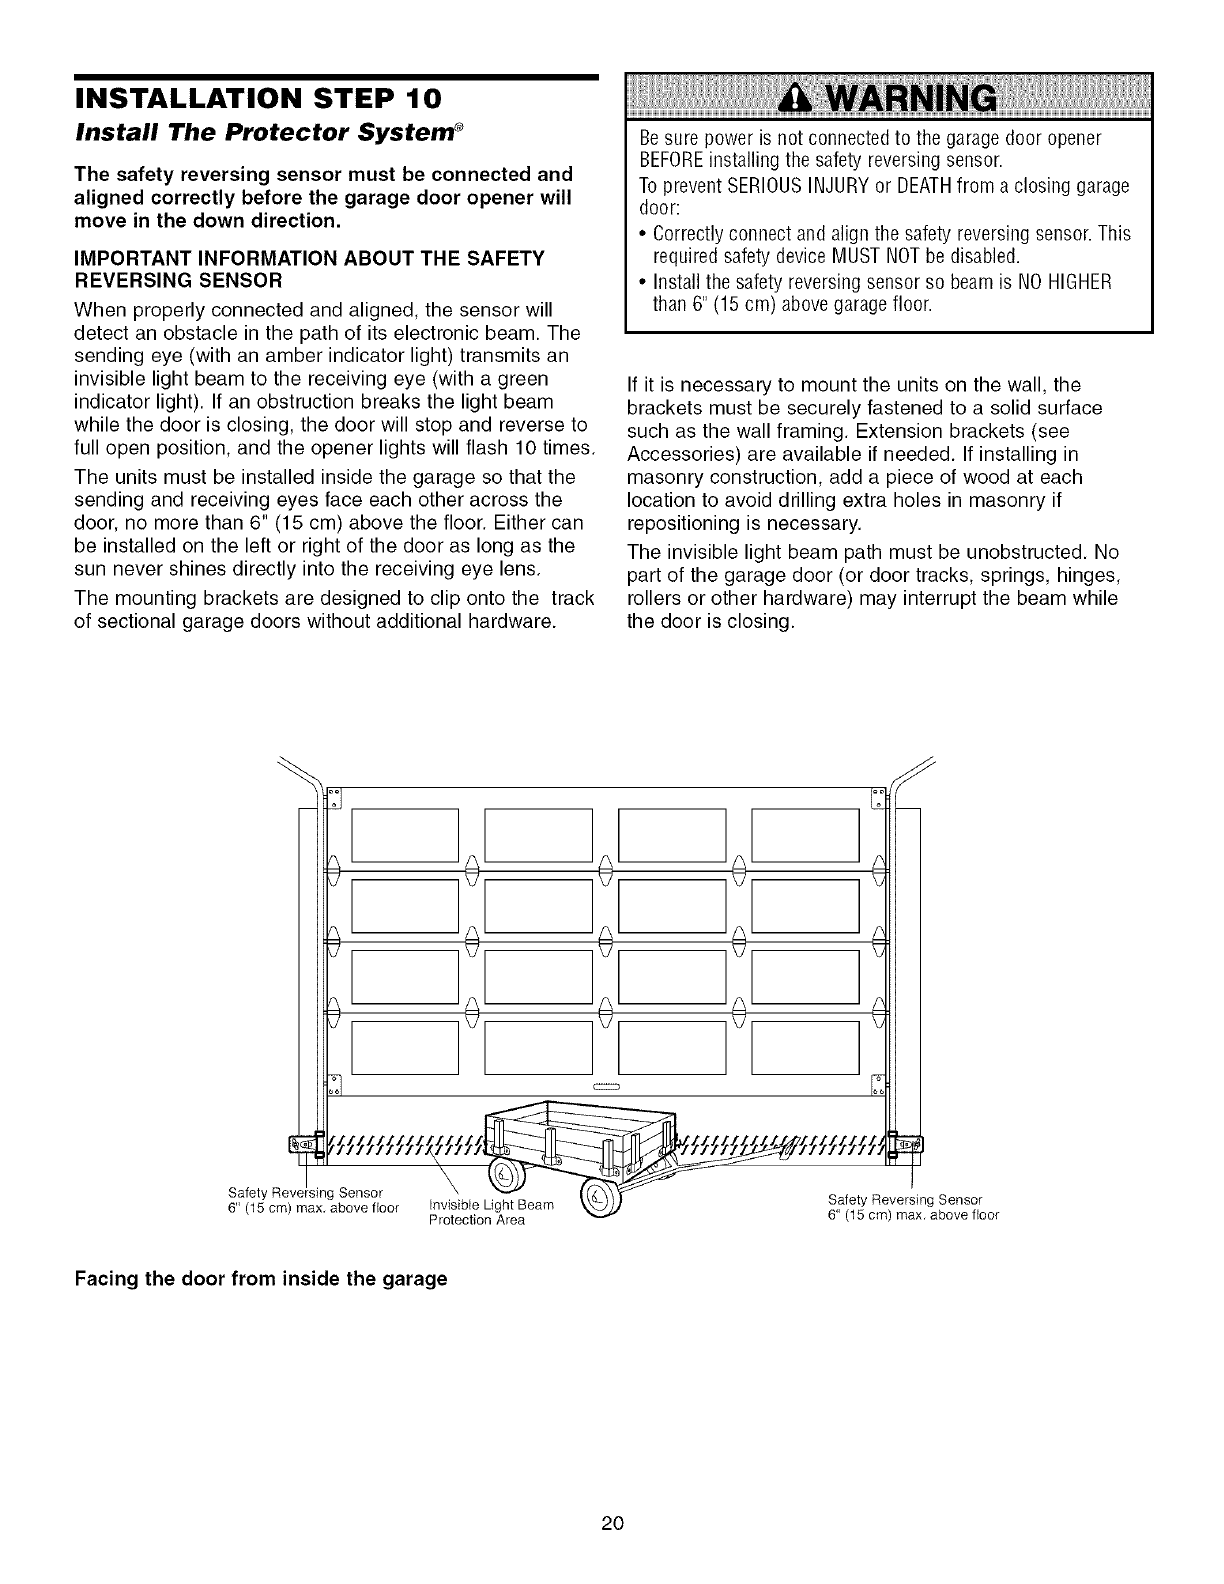 Page 20 Of Sears Garage Door Opener 13953915d User Guide Safety Reversing Sensor Wiring Diagram Installation Step 10 Install The Protector System Must Be Connected And Aligned Correctly Before